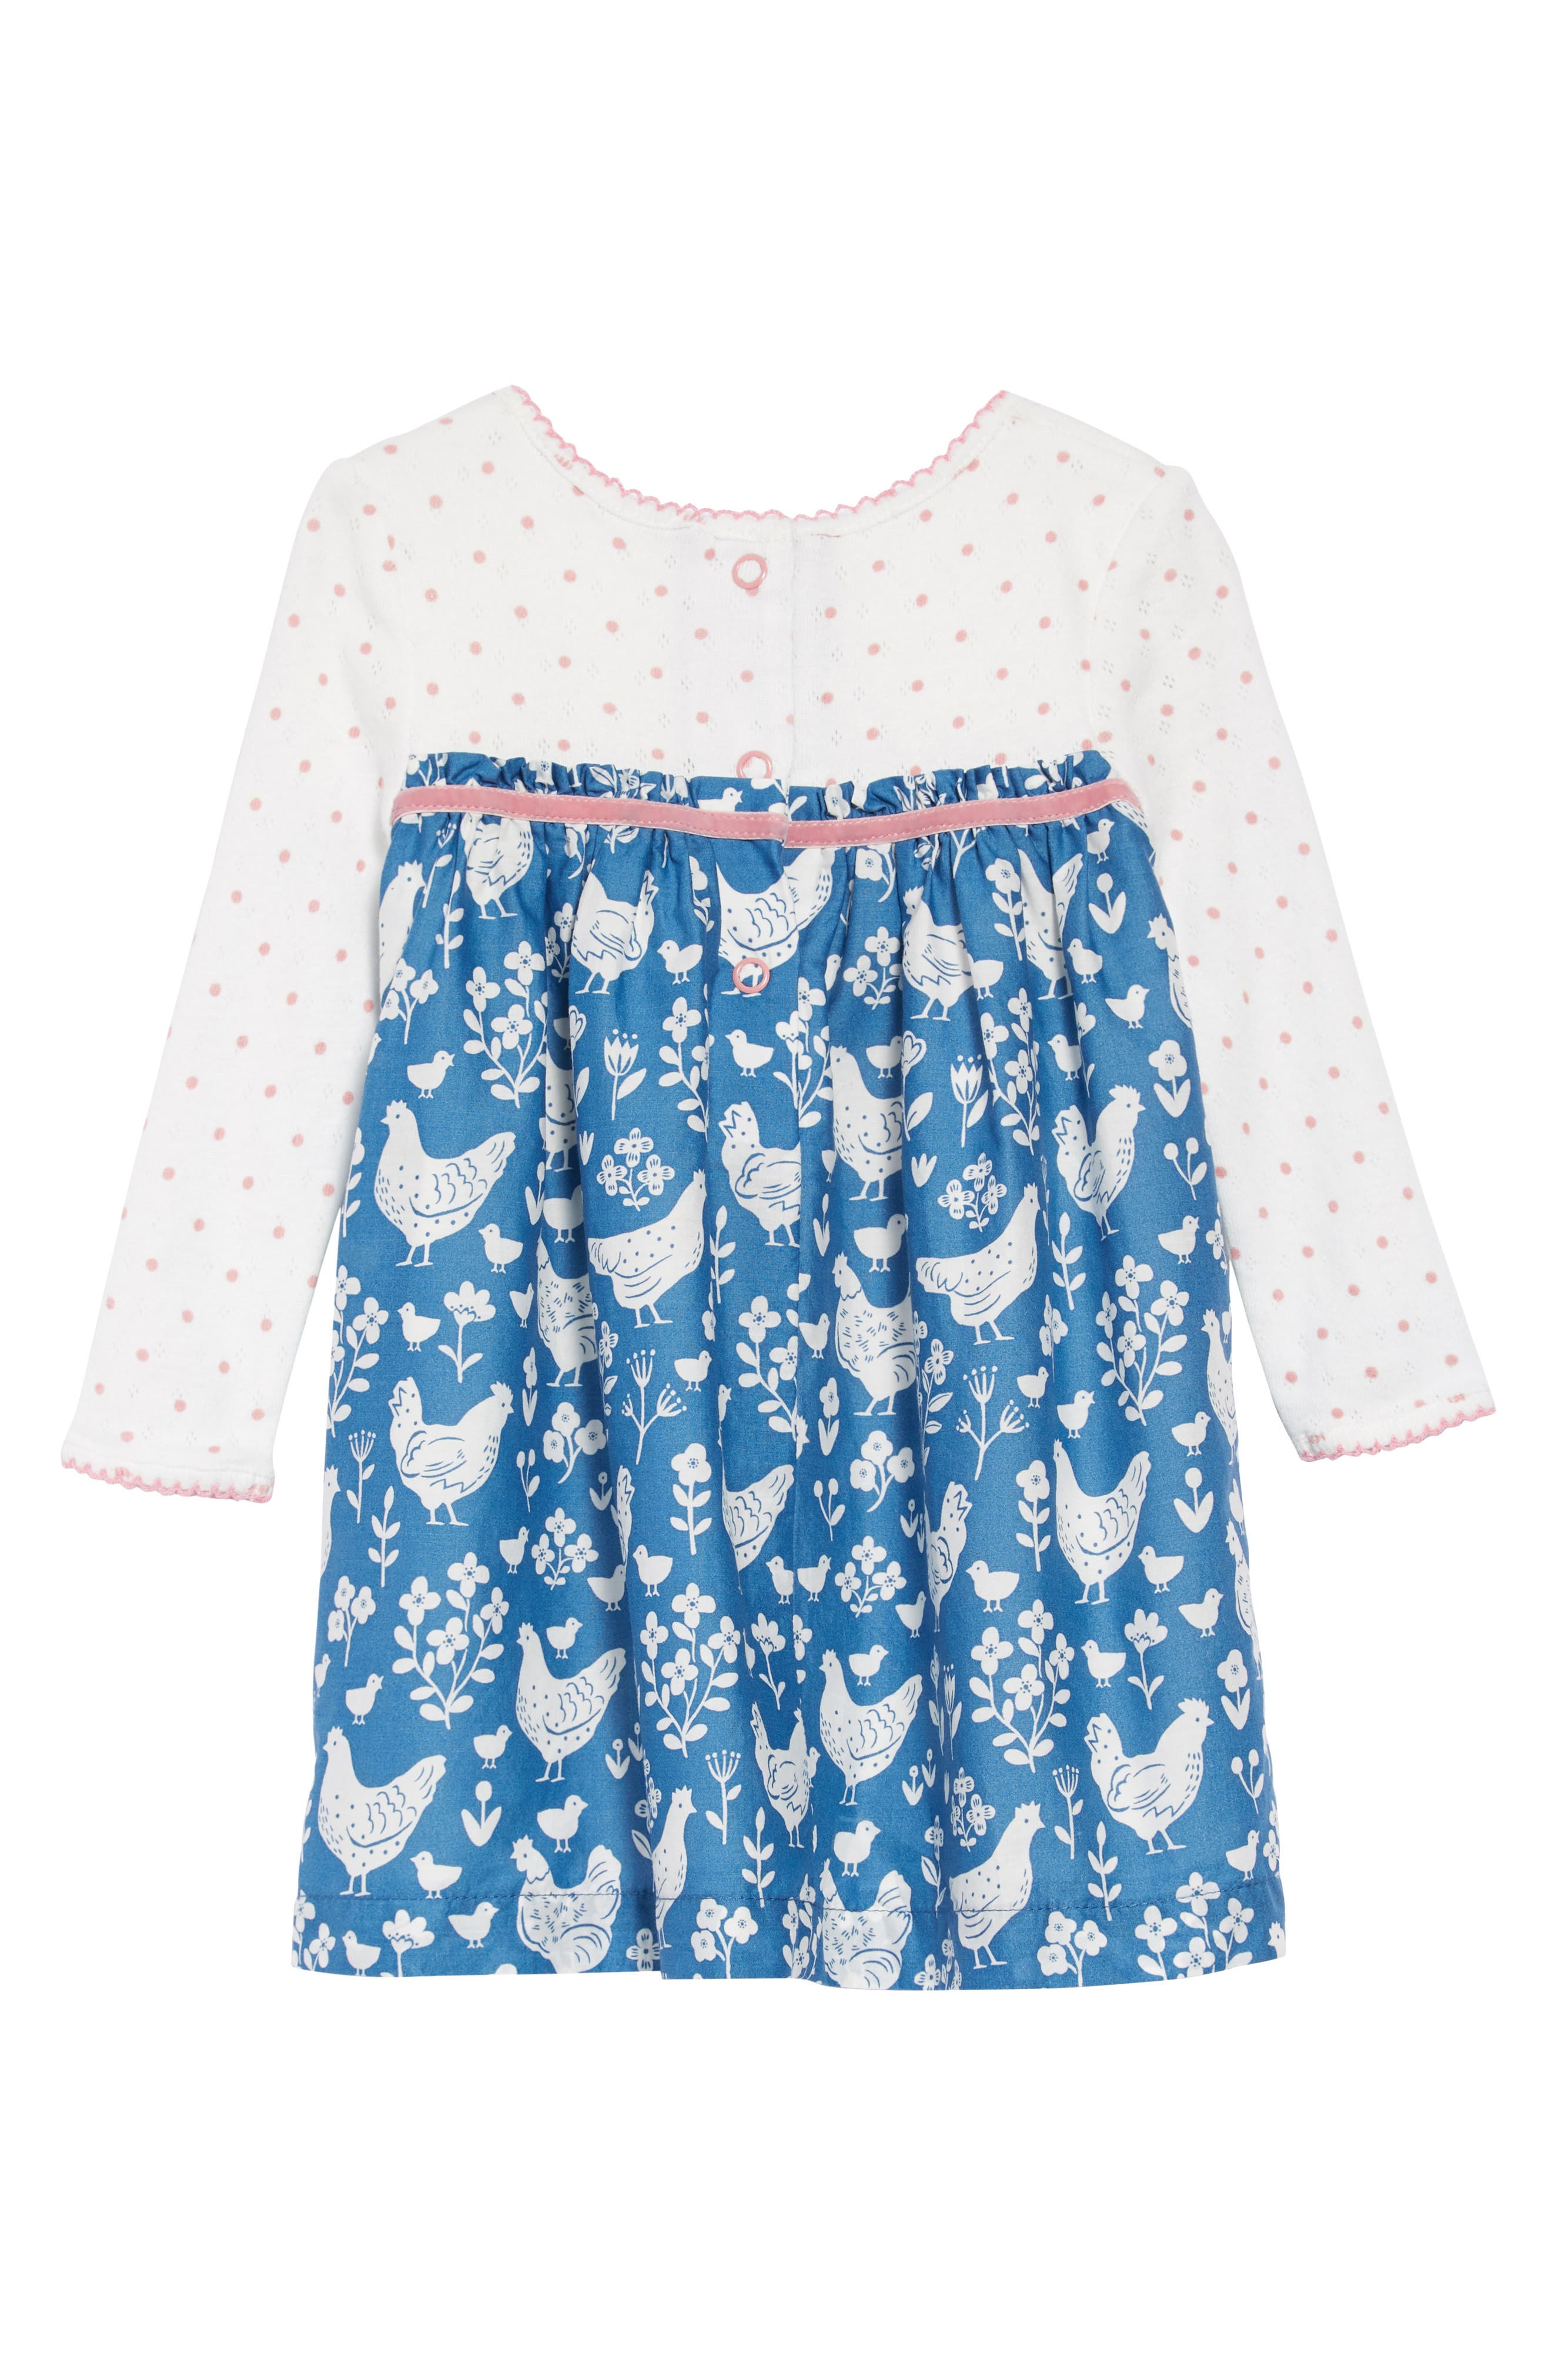 Pointelle & Woven Dress,                             Alternate thumbnail 2, color,                             AZURE/ FARMYARD/ TOILE